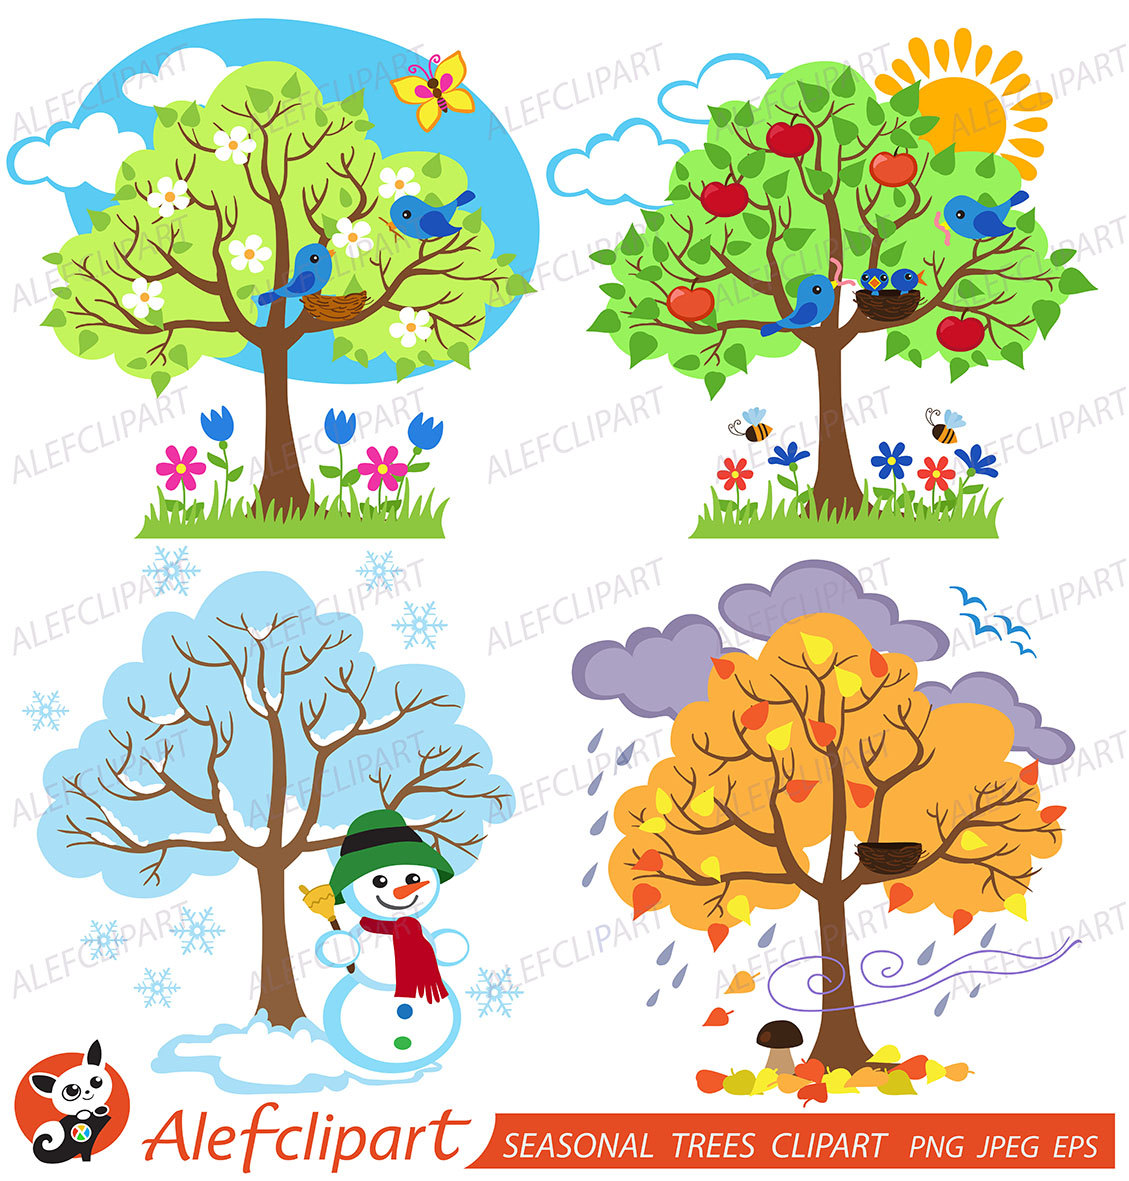 Season clipart seasonal #3